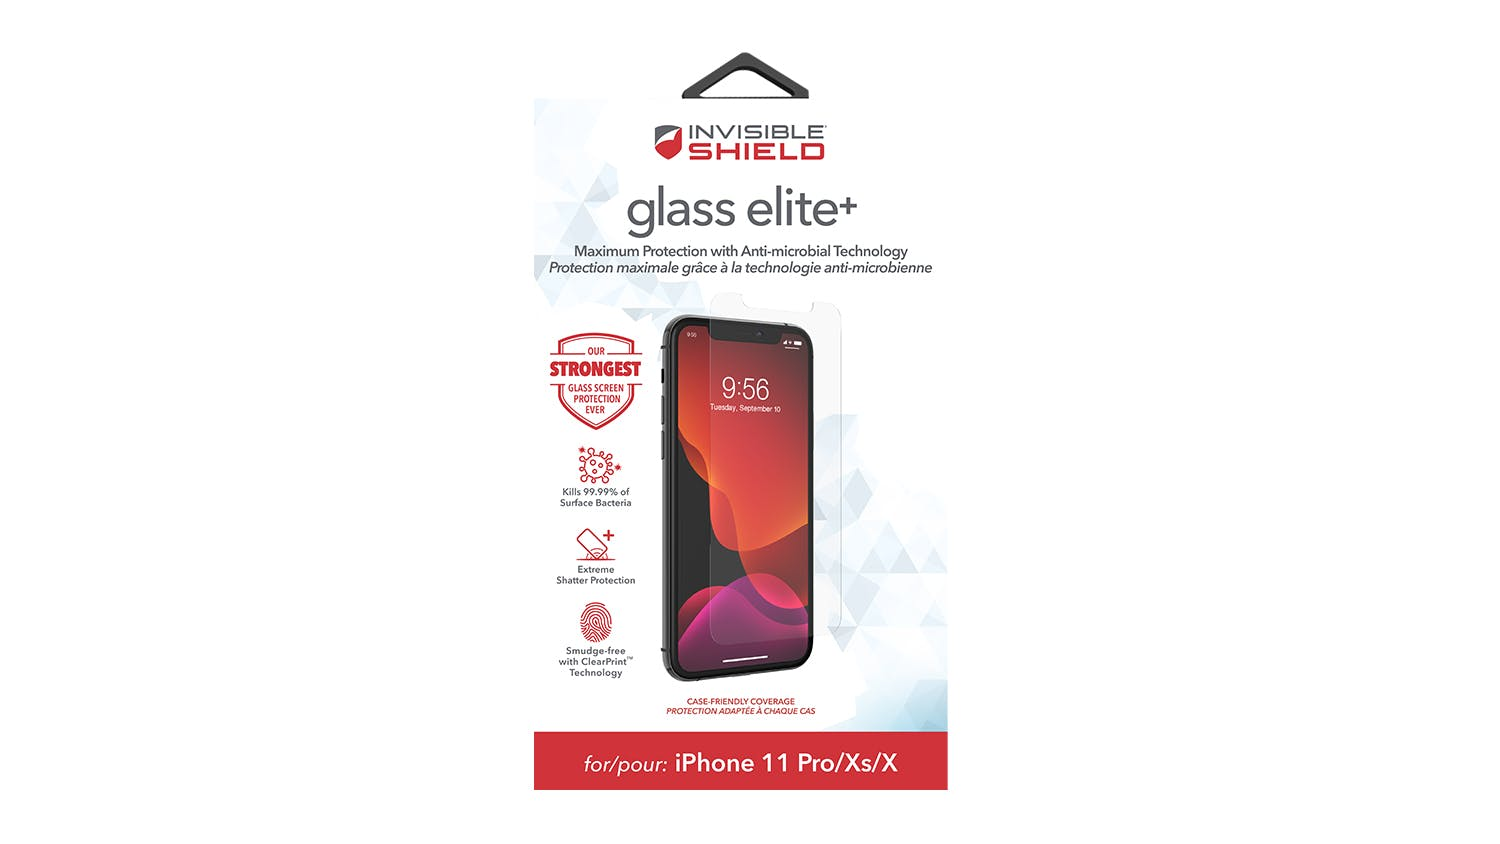 Zagg InvisibleShield GlassElite+ for iPhone X/XS/11 Pro